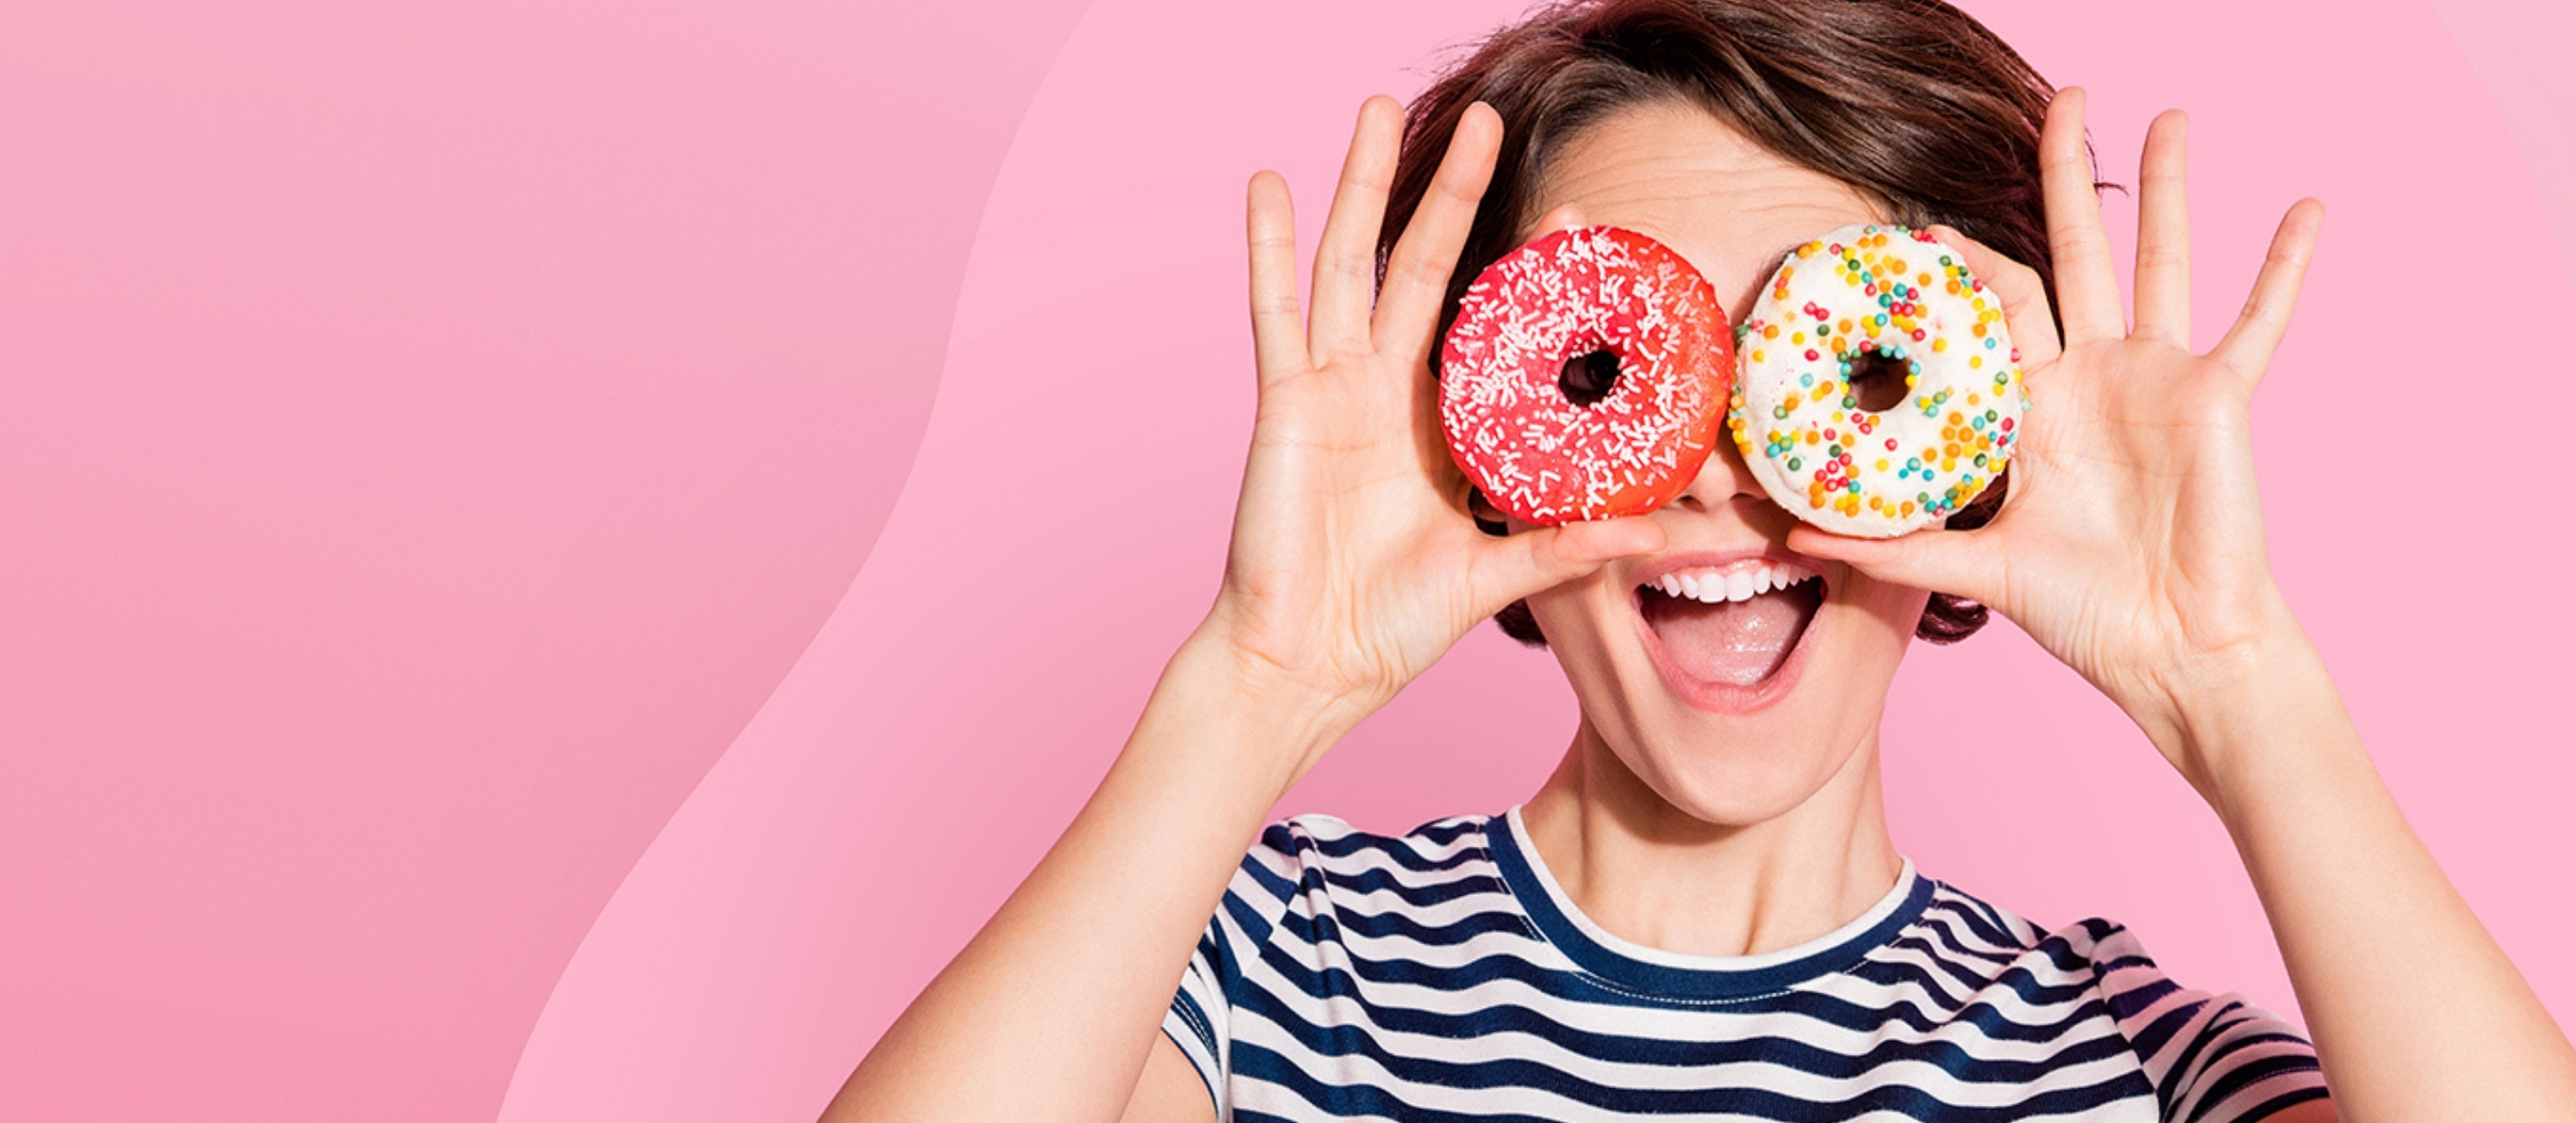 Smiling young woman in striped t-shirt holding iced doughnuts over eyes